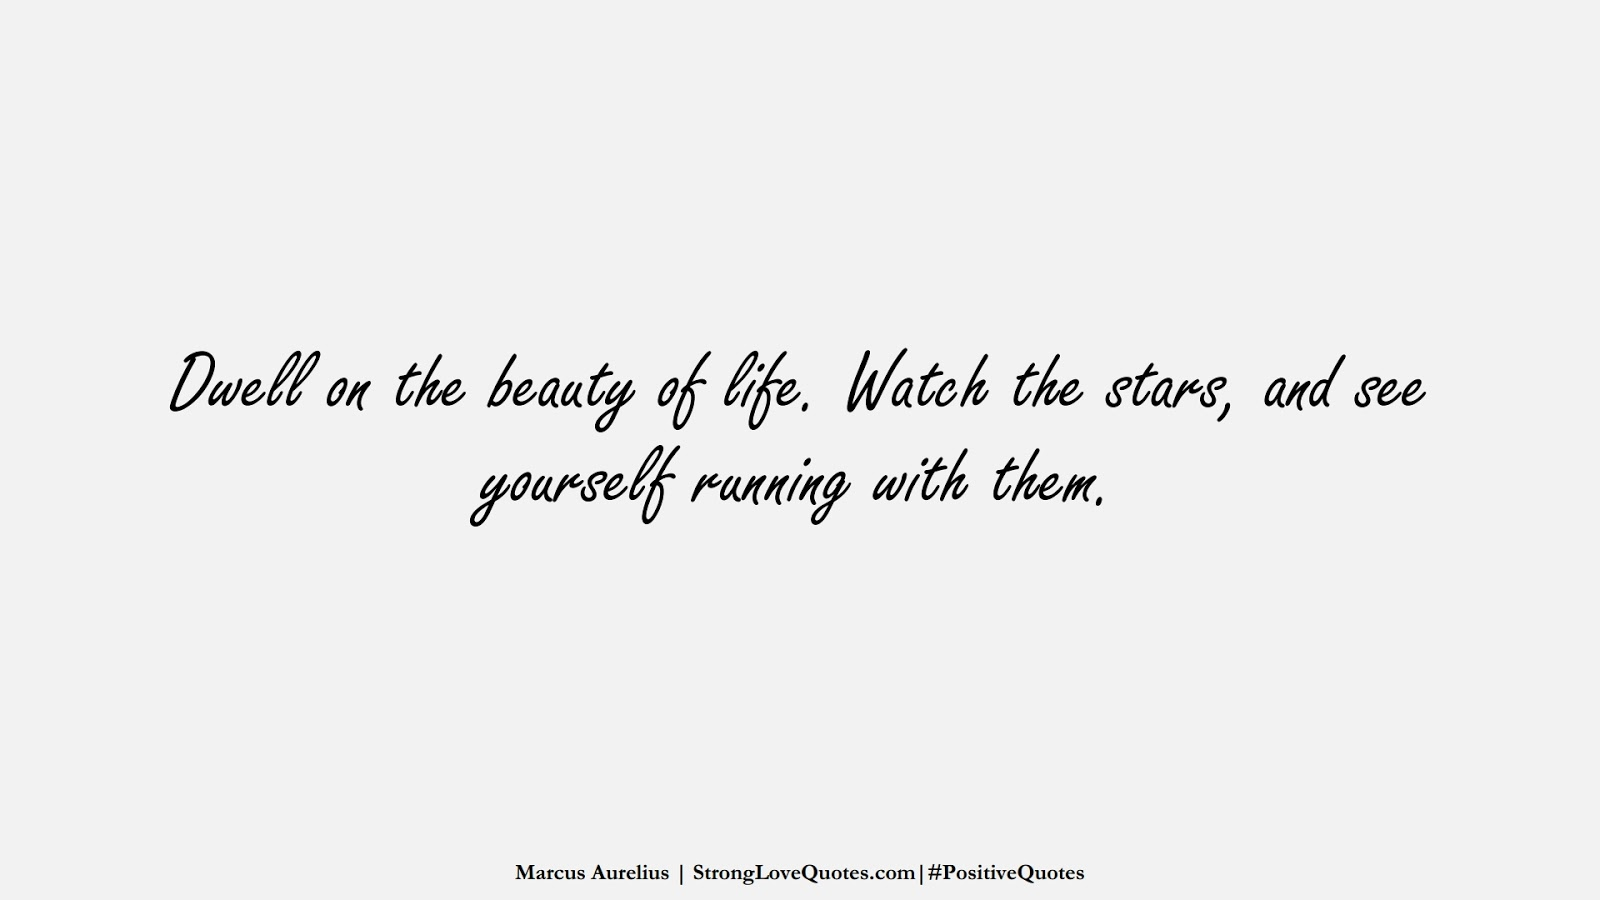 Dwell on the beauty of life. Watch the stars, and see yourself running with them. (Marcus Aurelius);  #PositiveQuotes